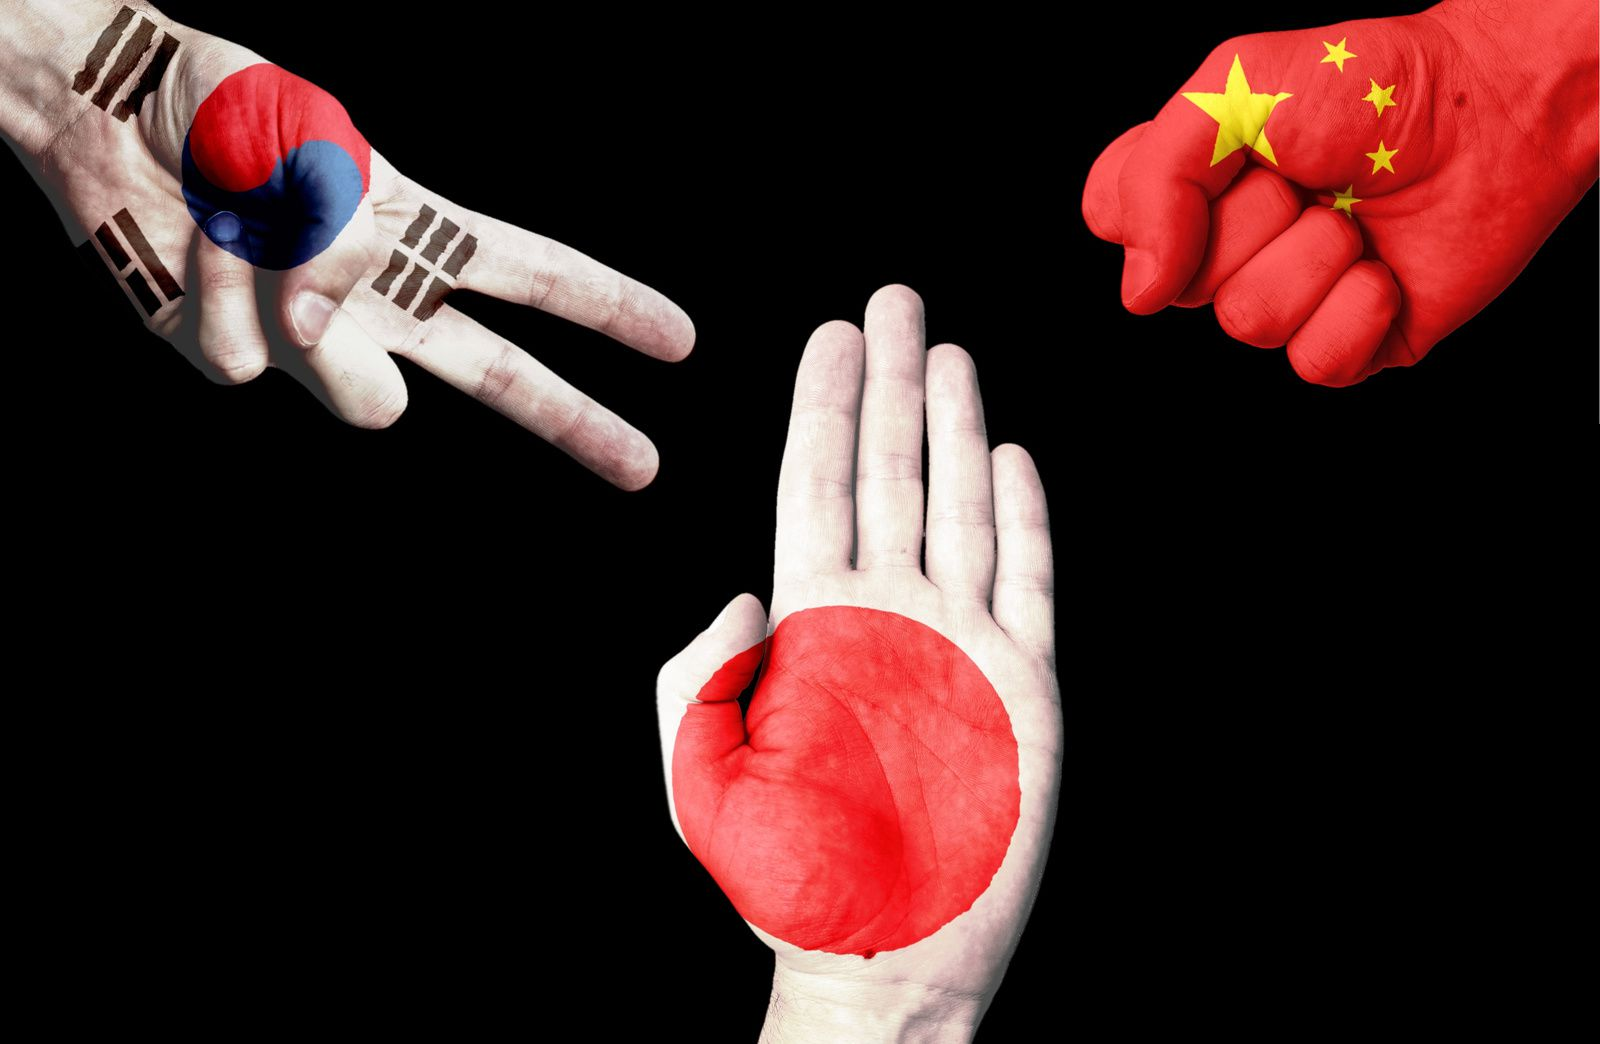 S. Korea, China, Japan to hold first three-way talks on cybersecurity